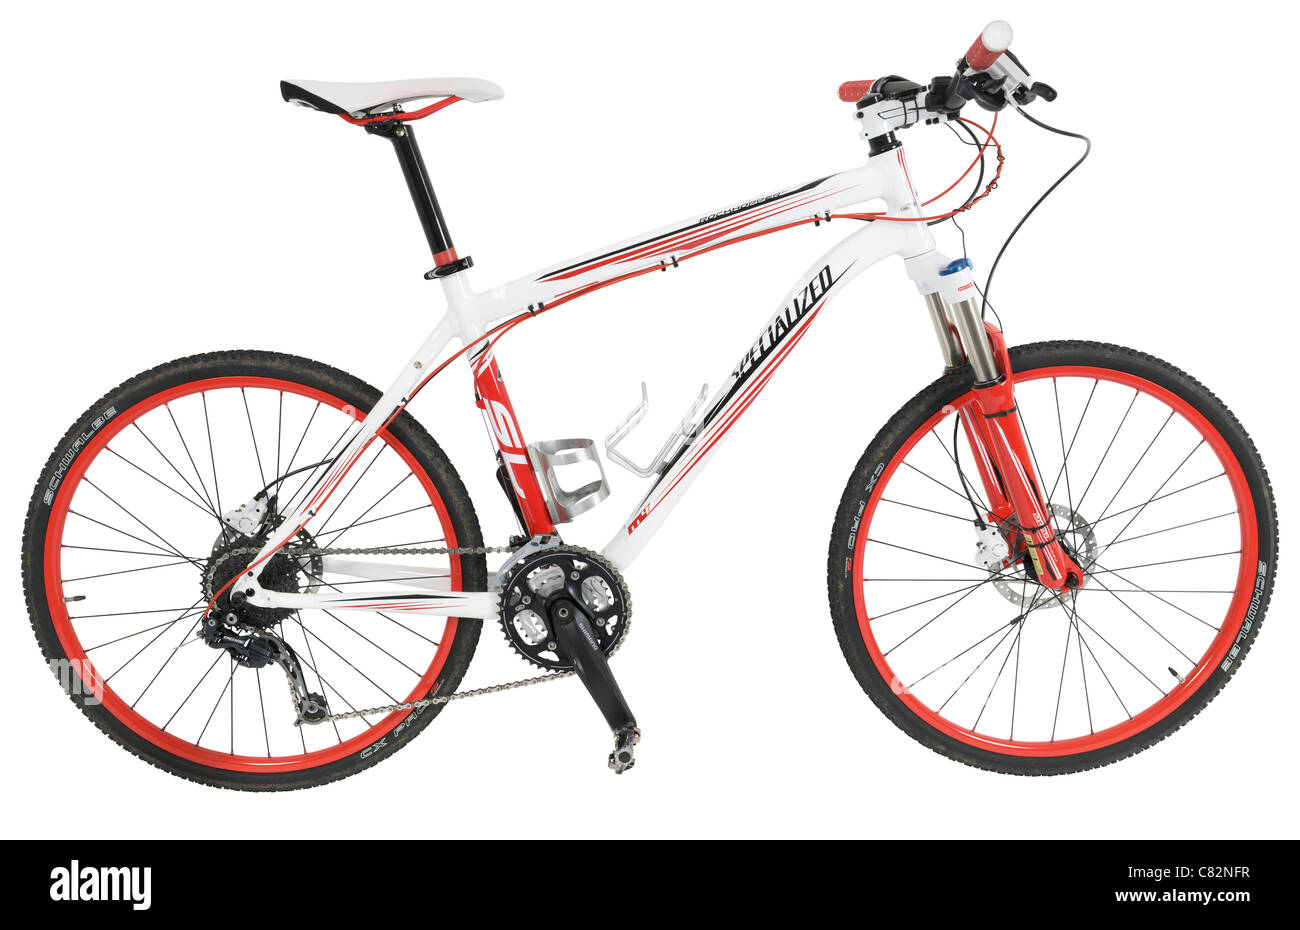 Hardtail mountain bike on white background - Stock Image